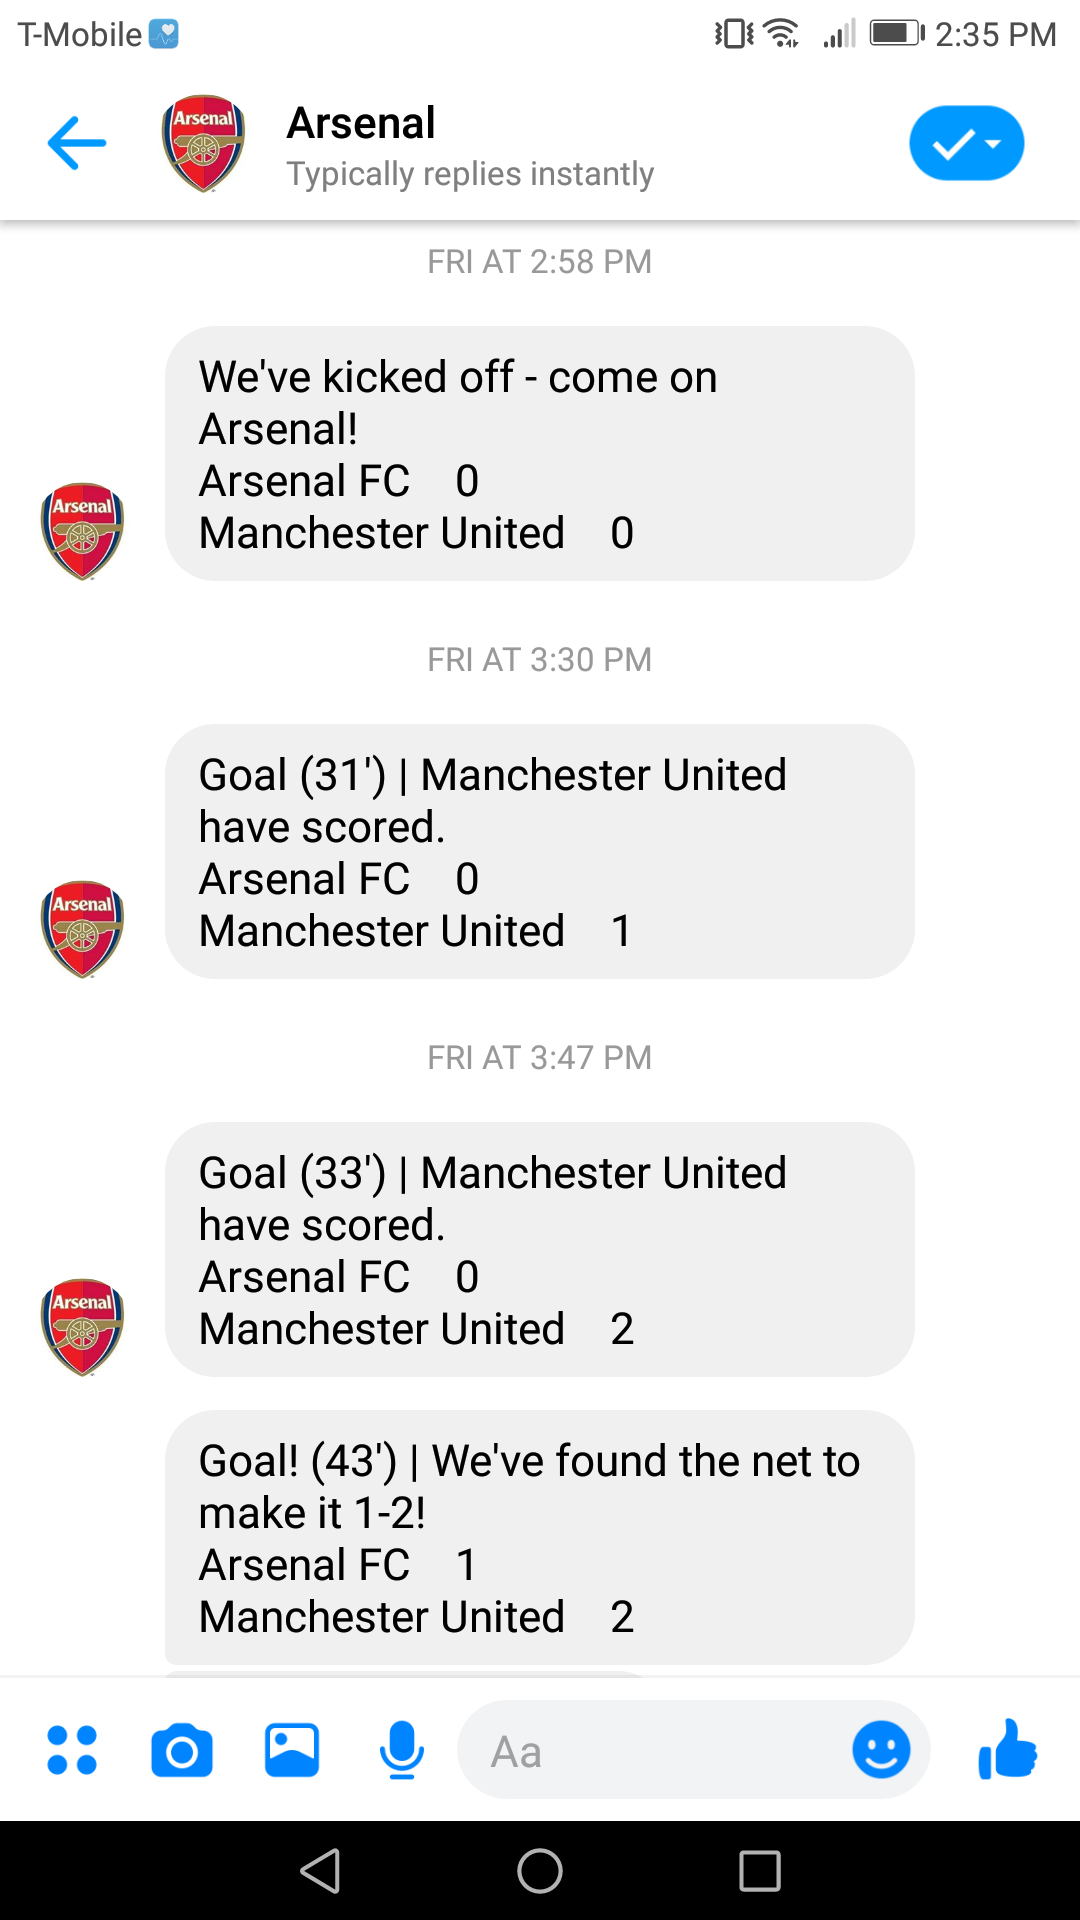 Arsenal's robot provides live updates